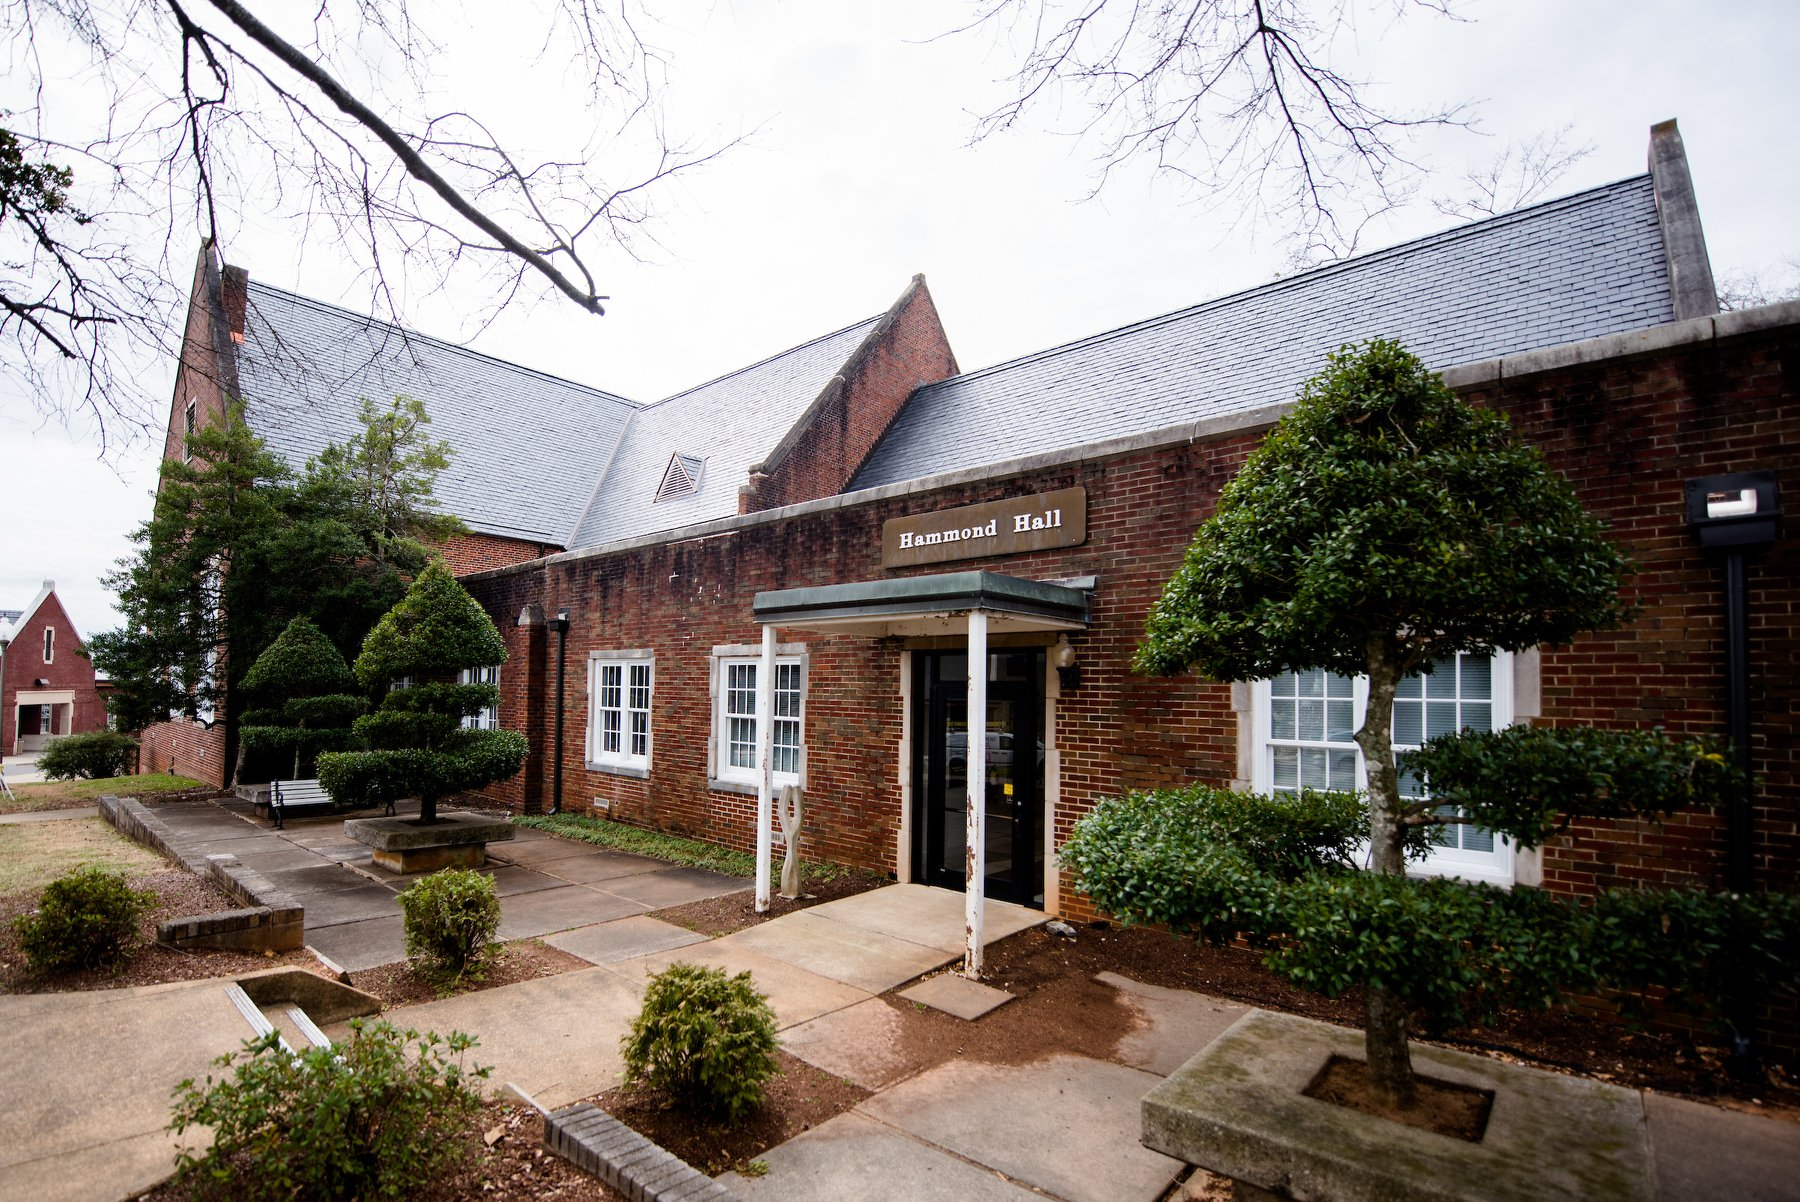 Hammond Hall, pictured, is home to JSU's art department. (Grace Cockrell/JSU)